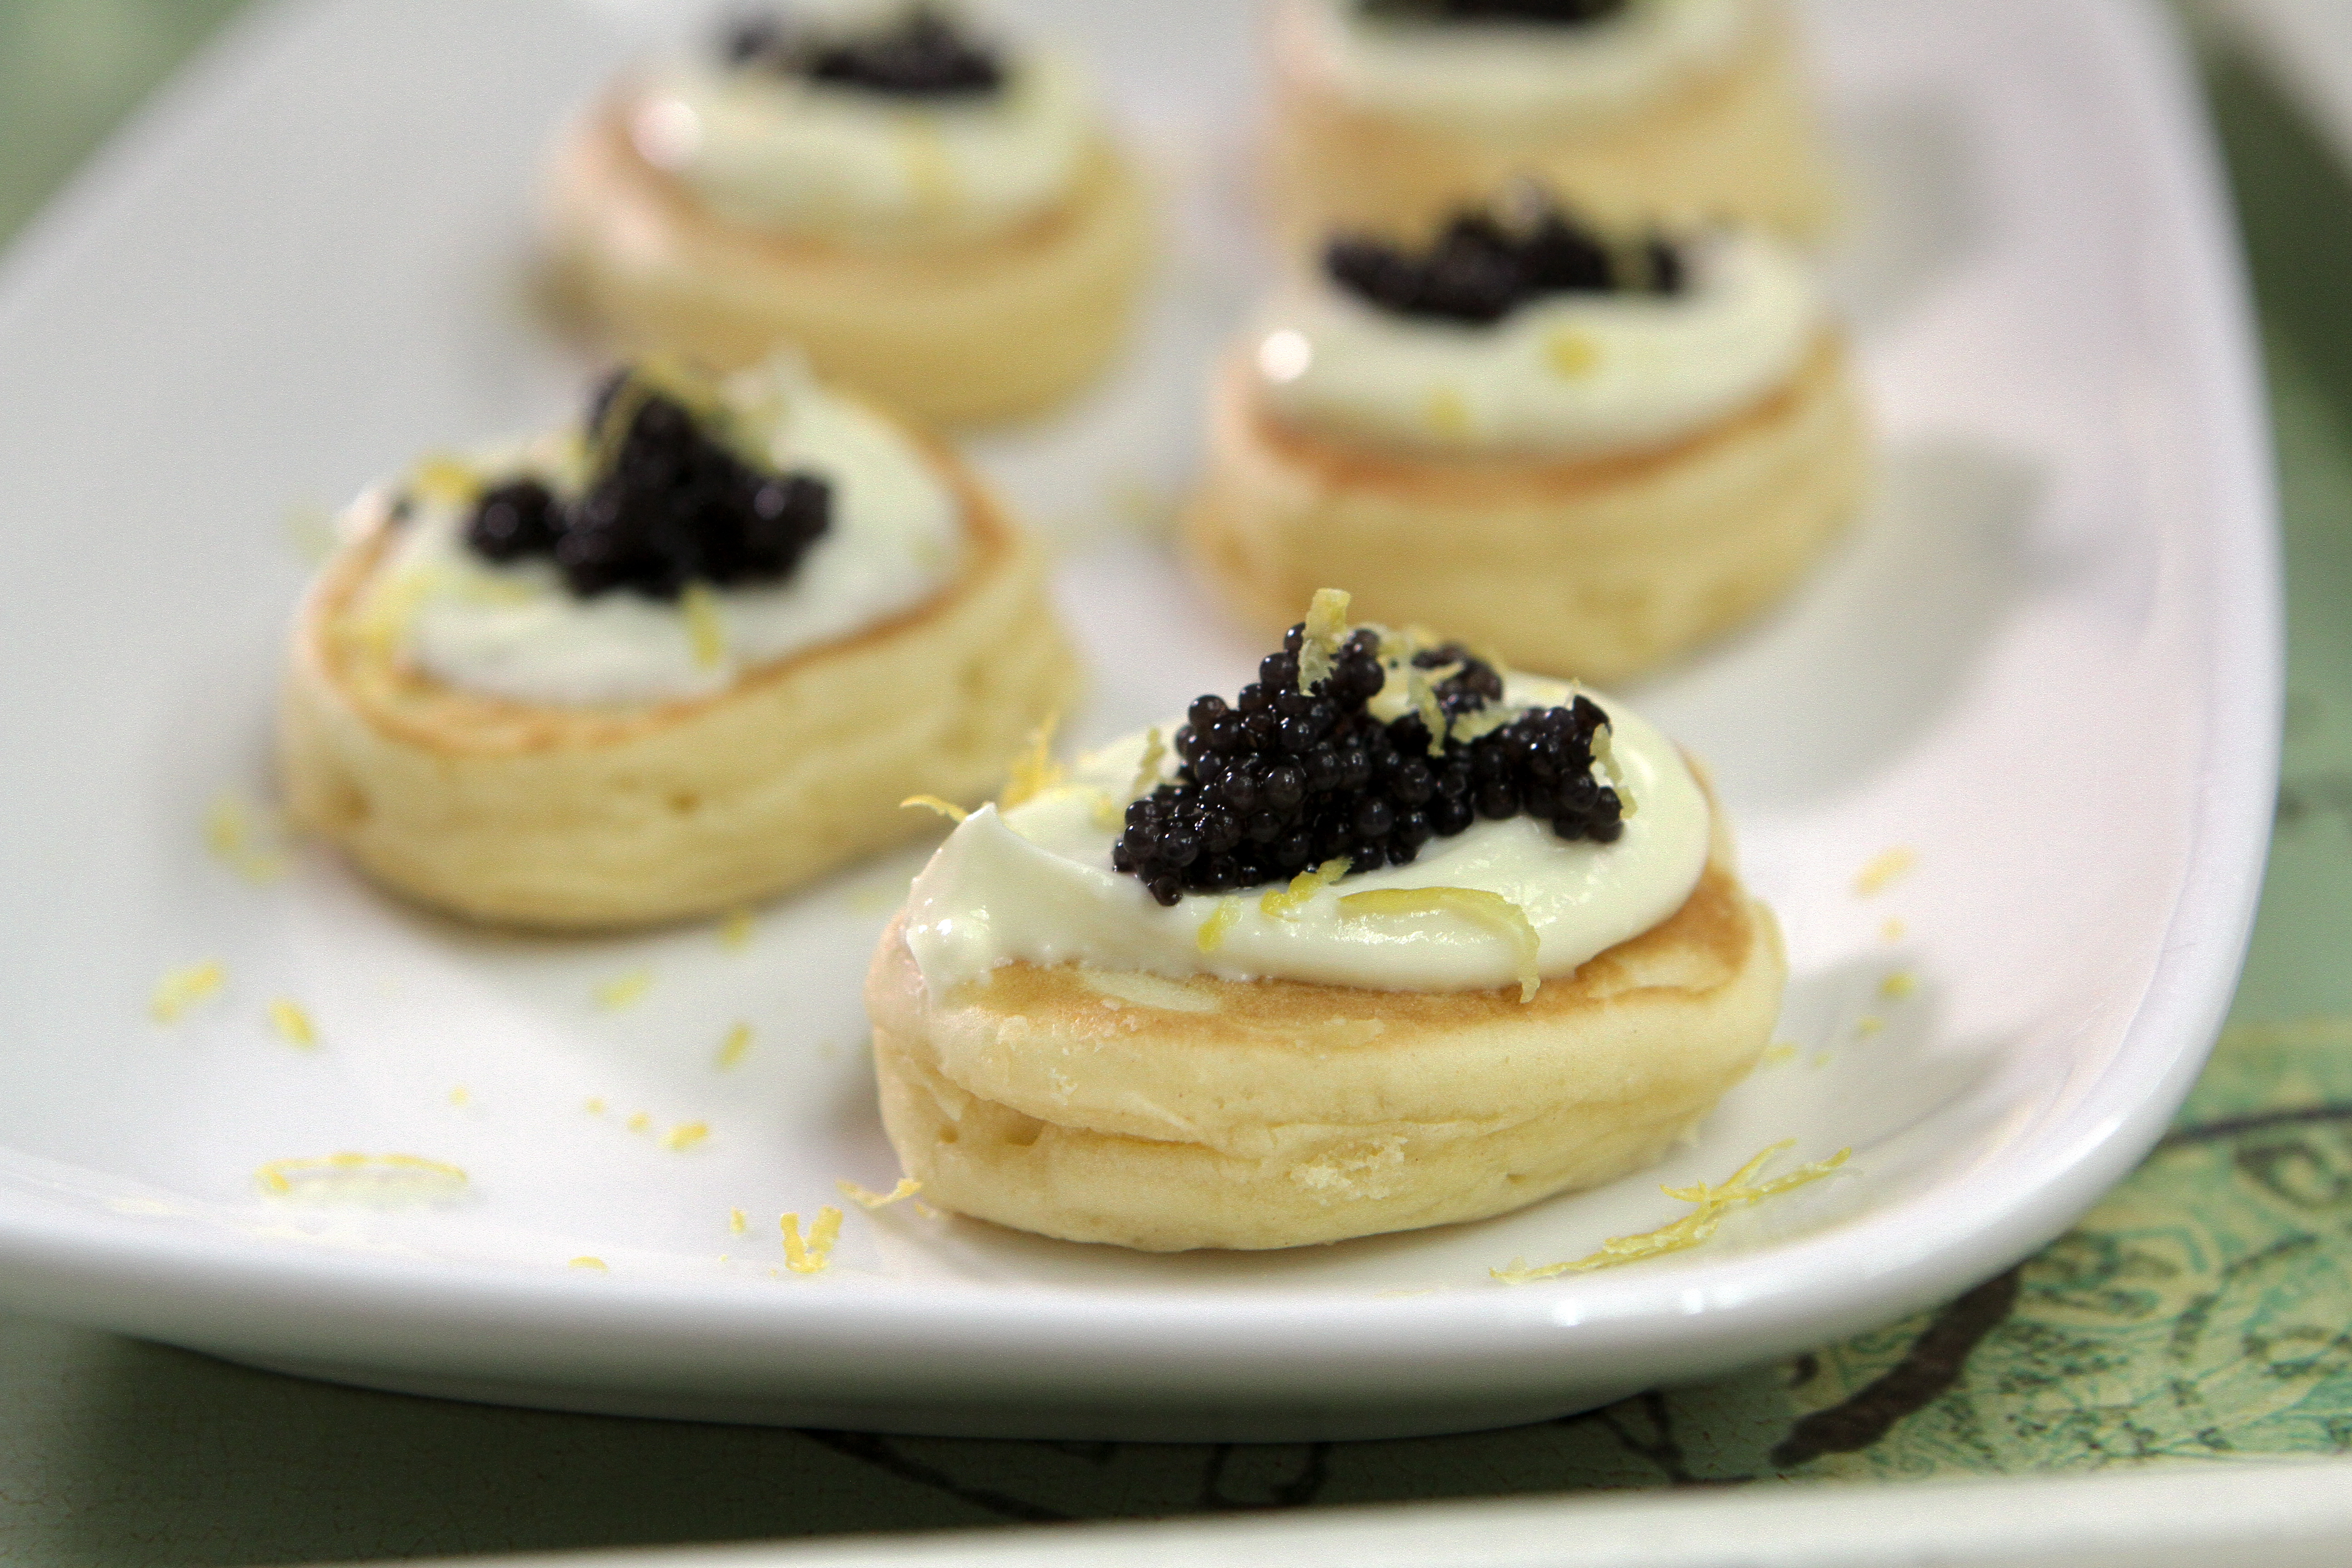 Queen Elizabeth's Drop Scones Topped with Sour Cream and Caviar